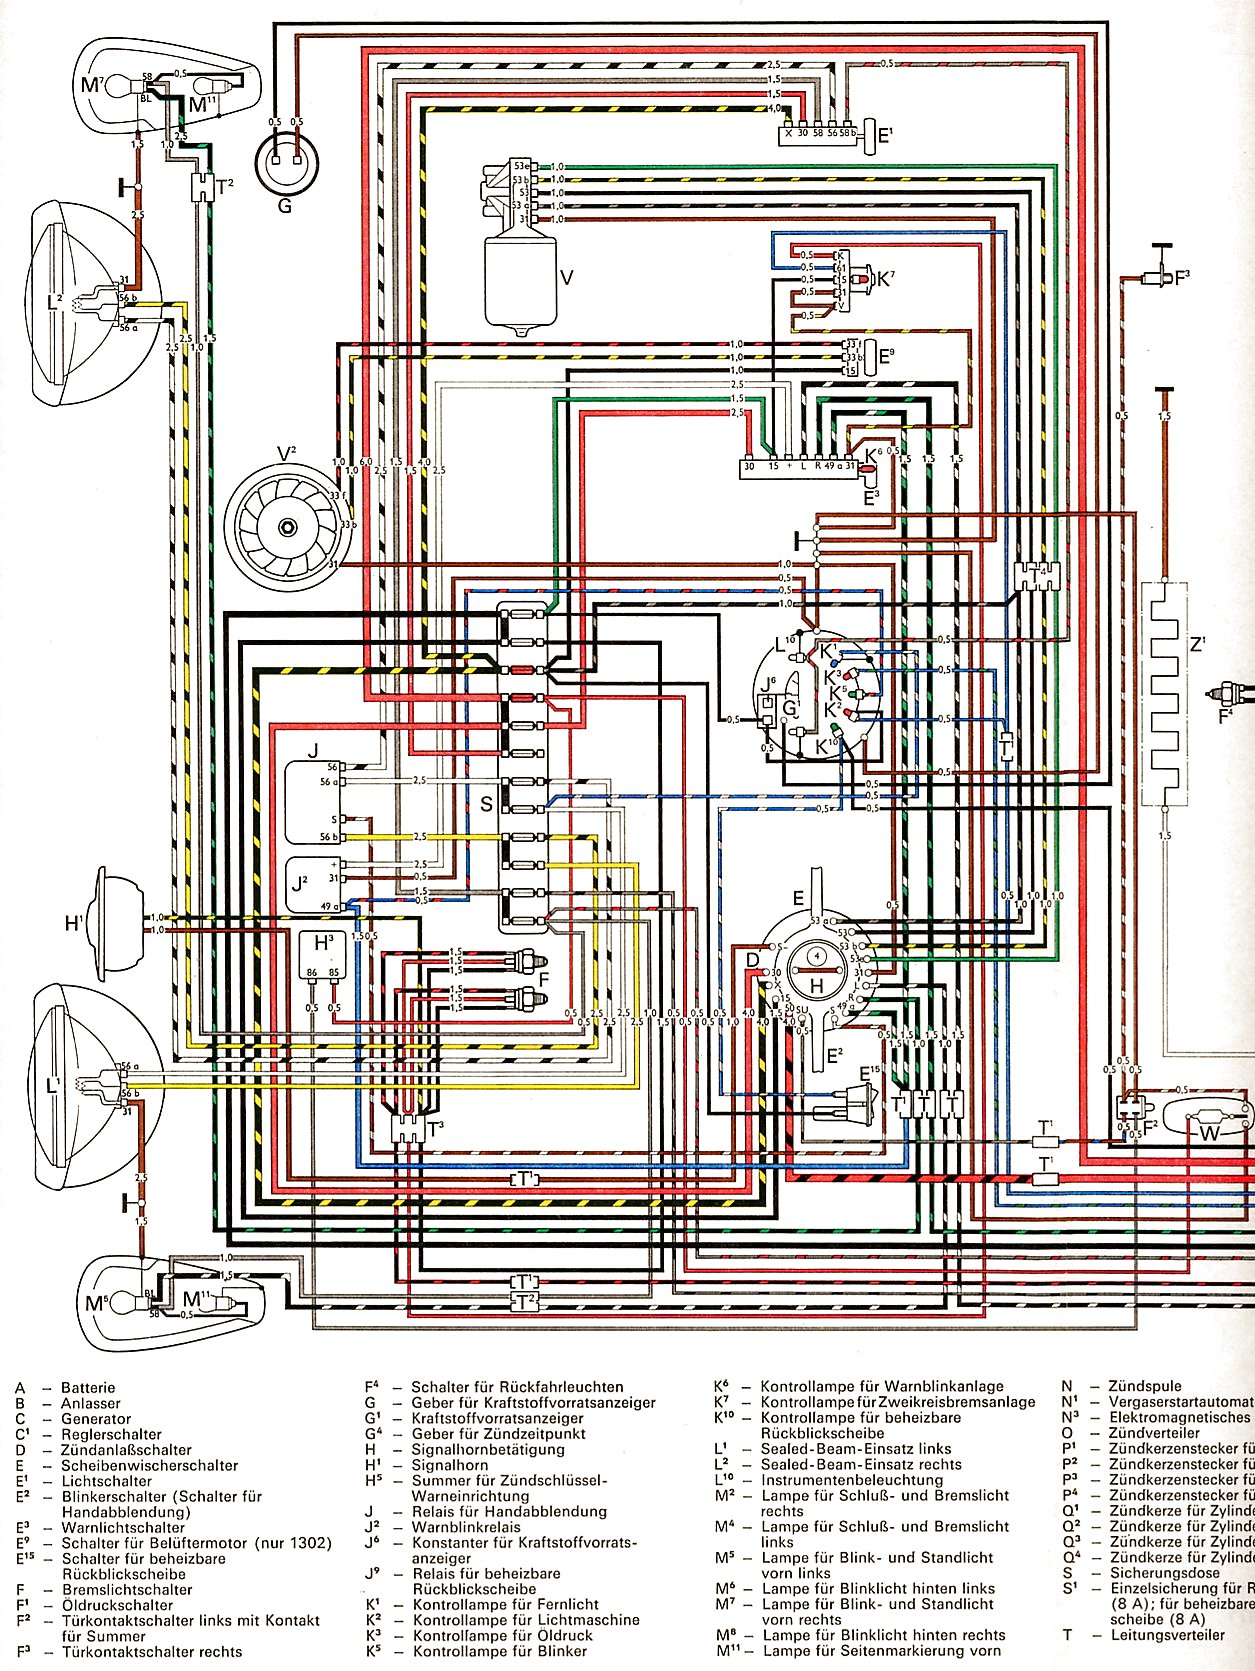 1972 vw bug wiring diagram 11 12 stromoeko de \u2022